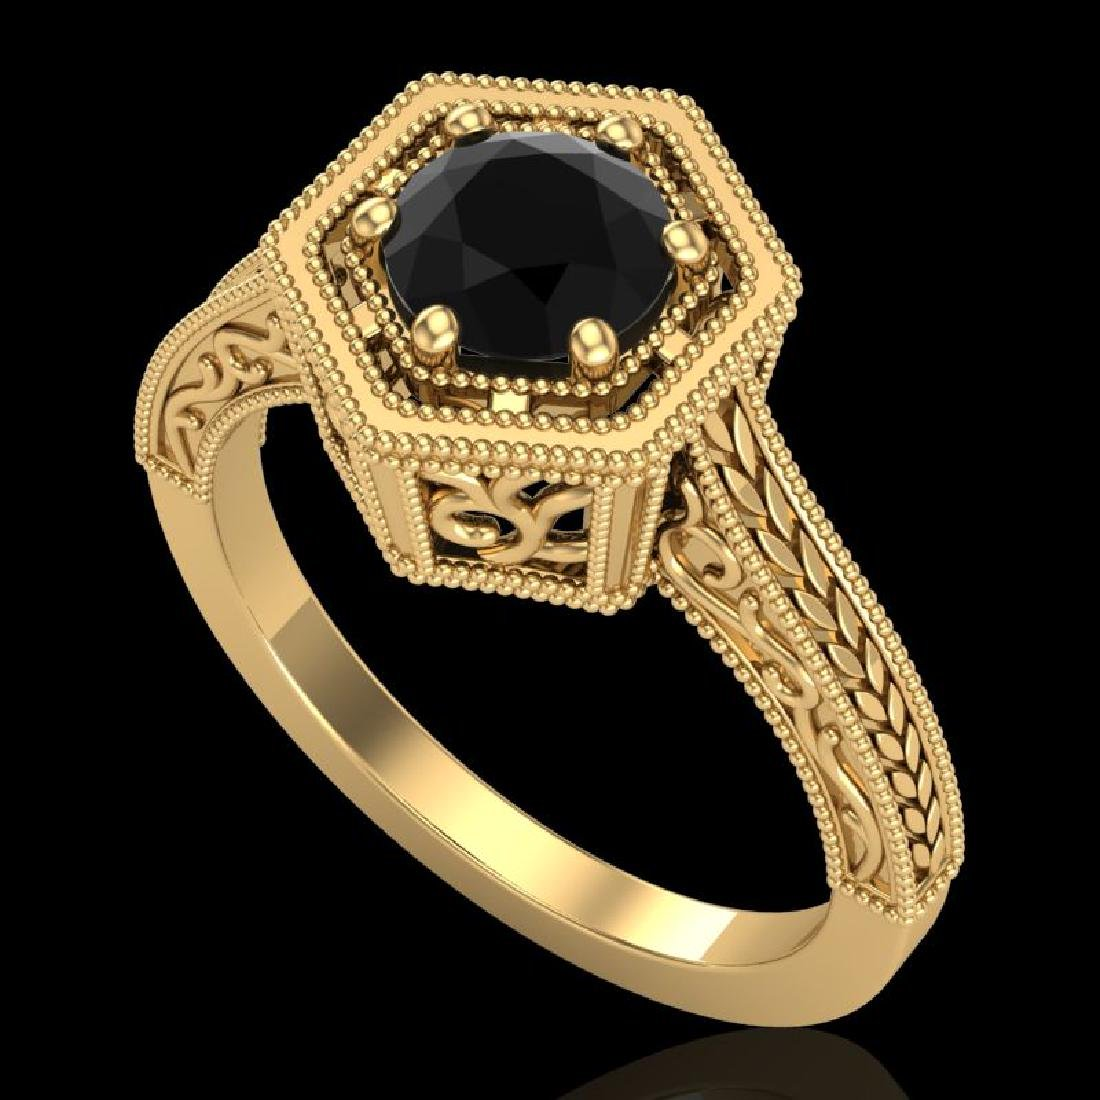 0.77 CTW Fancy Black Diamond Solitaire Engagement Art